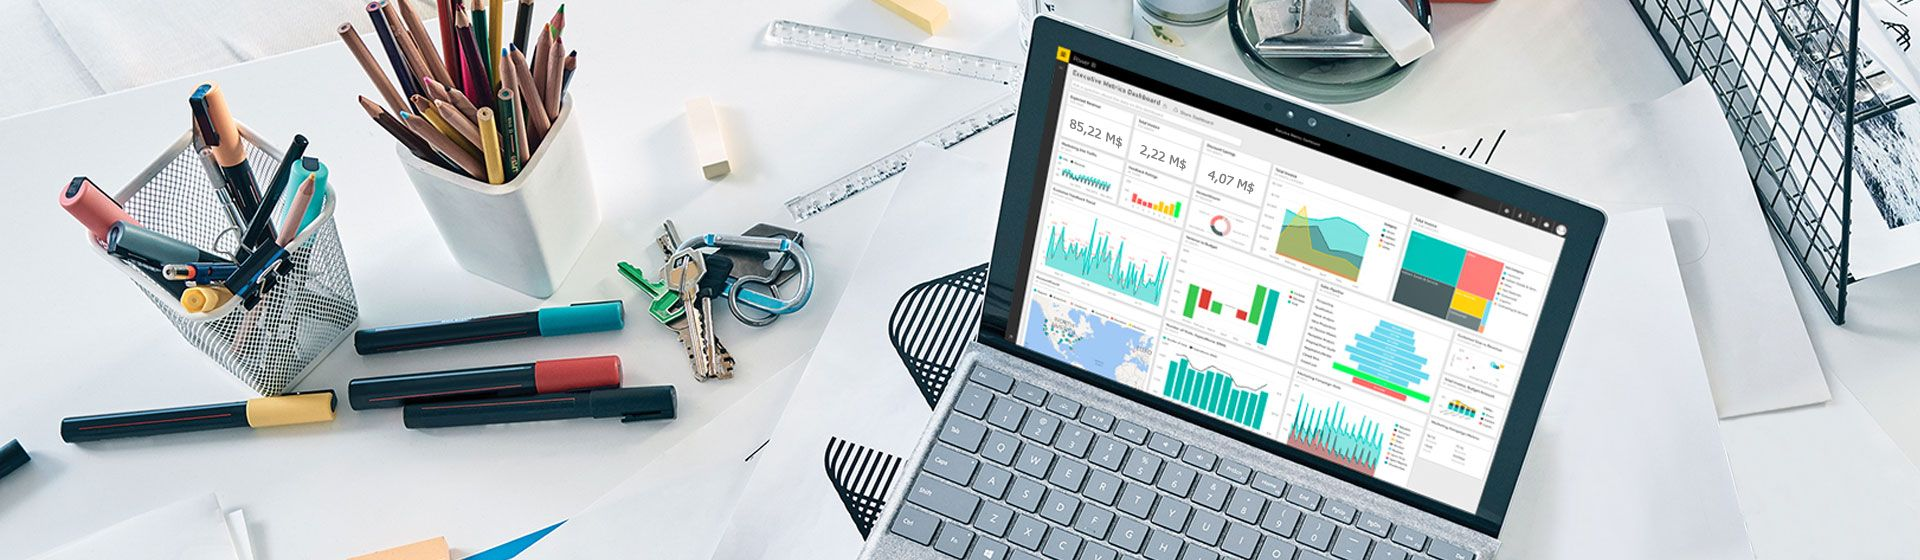 Bureau vide avec un moniteur affichant Power BI